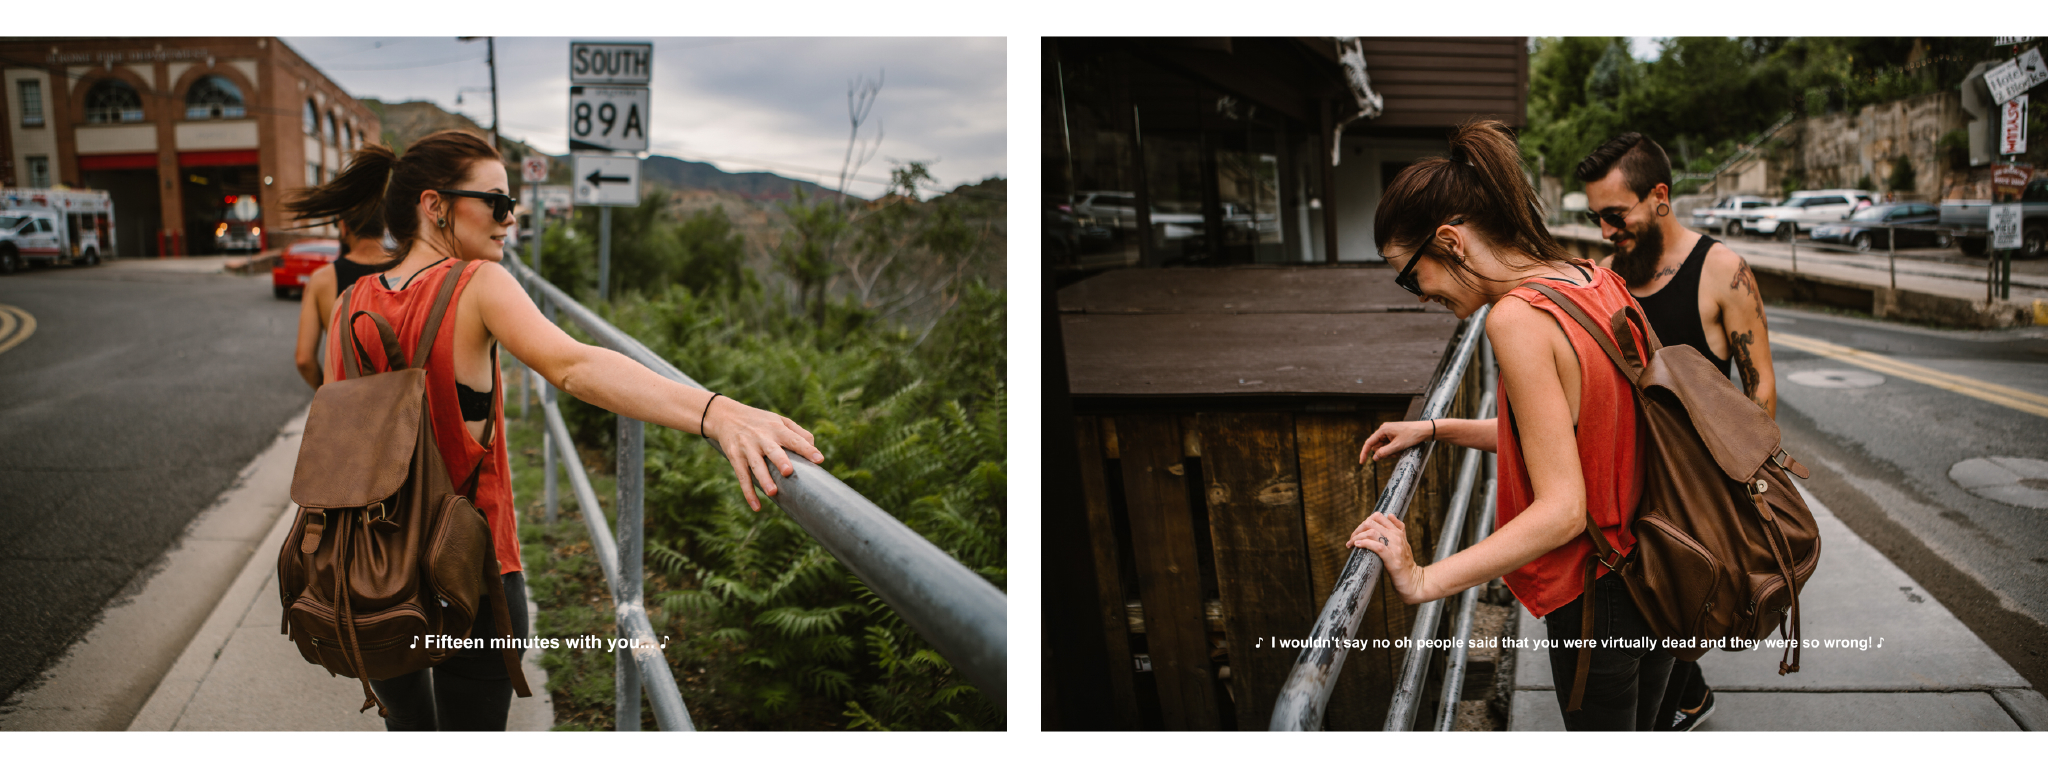 san diego wedding   photographer | collage of woman leaning against pipe railing